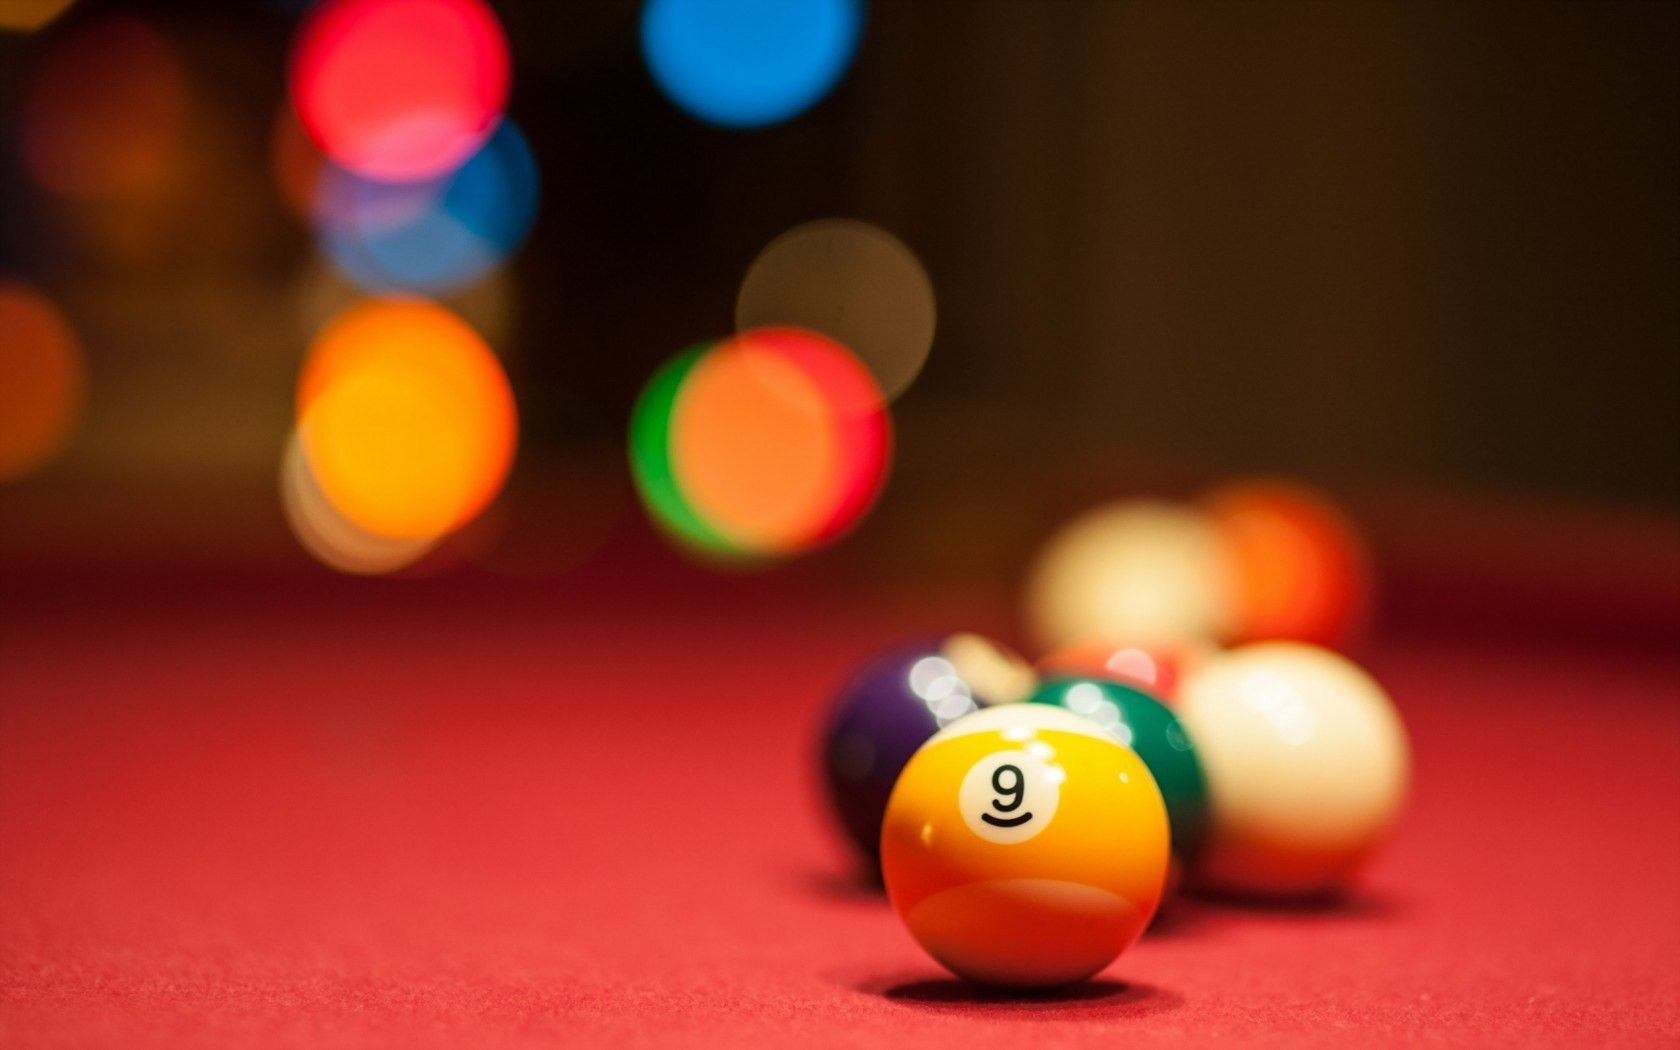 balls image item for pool sale billiard billard studios table by klockwork